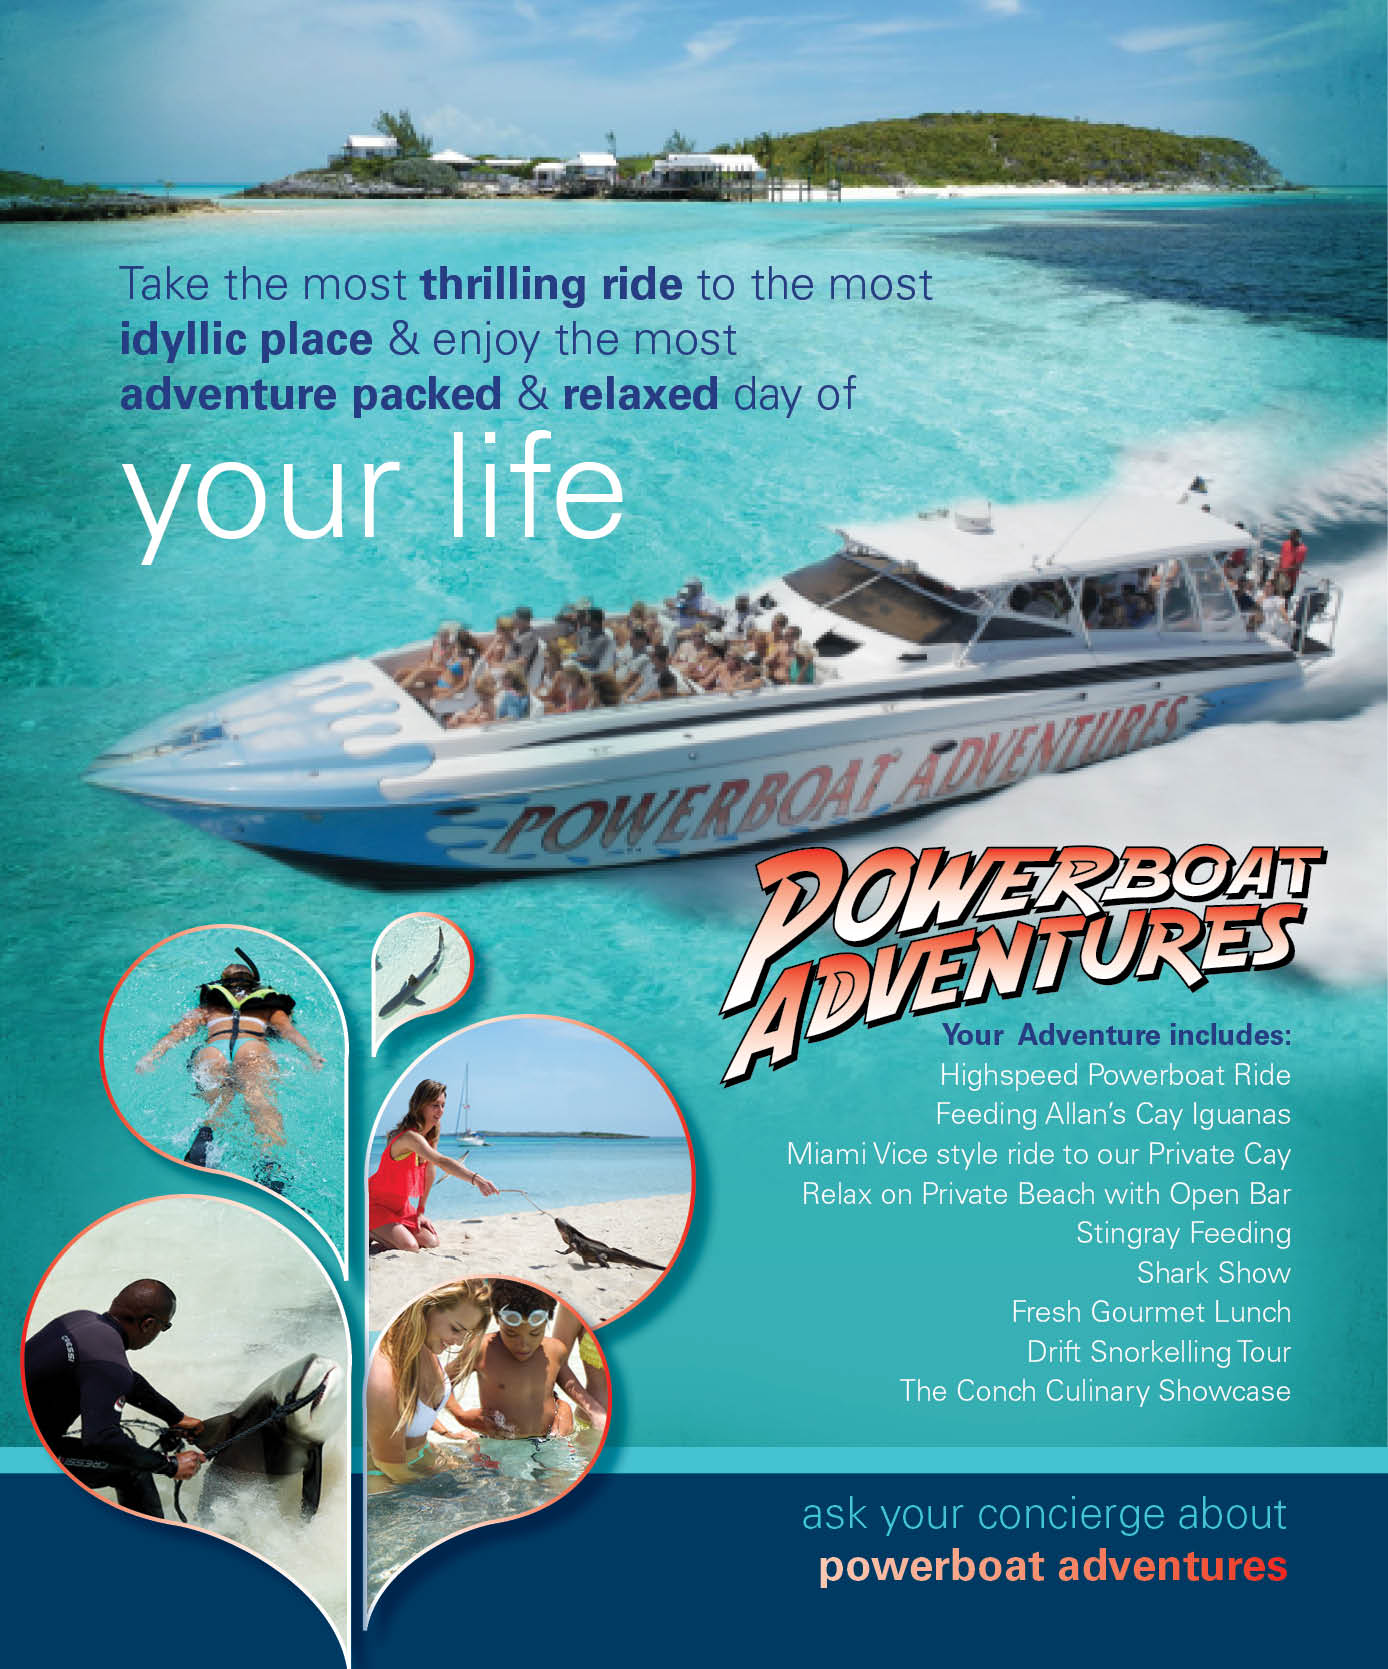 Powerboat - Hilton moments ad (rev 1)